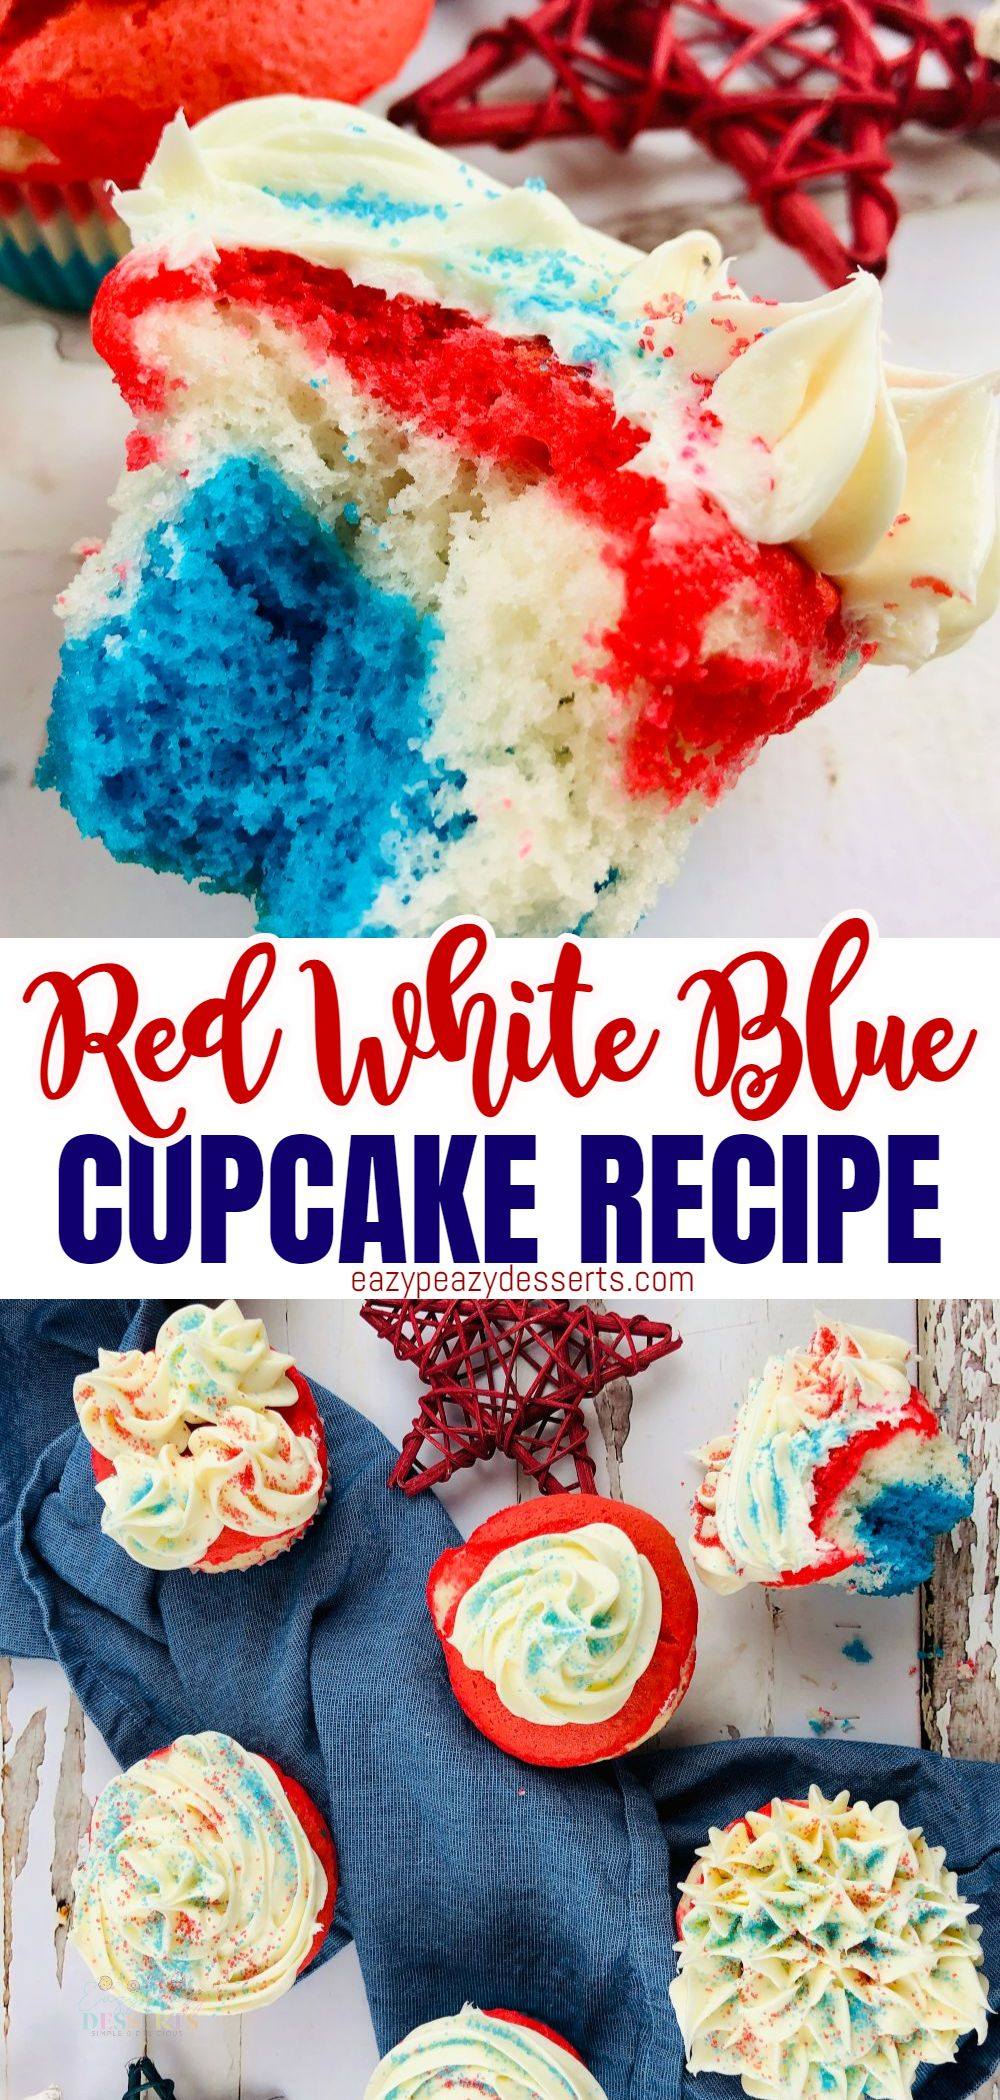 Fourth of July is just around the corner! So today, I'm exploring some red white and blue cupcakes with delightful cupcake decorating ideas that will be fun for all the family, from the baking right through to the BBQ! via @eazypeazydesserts